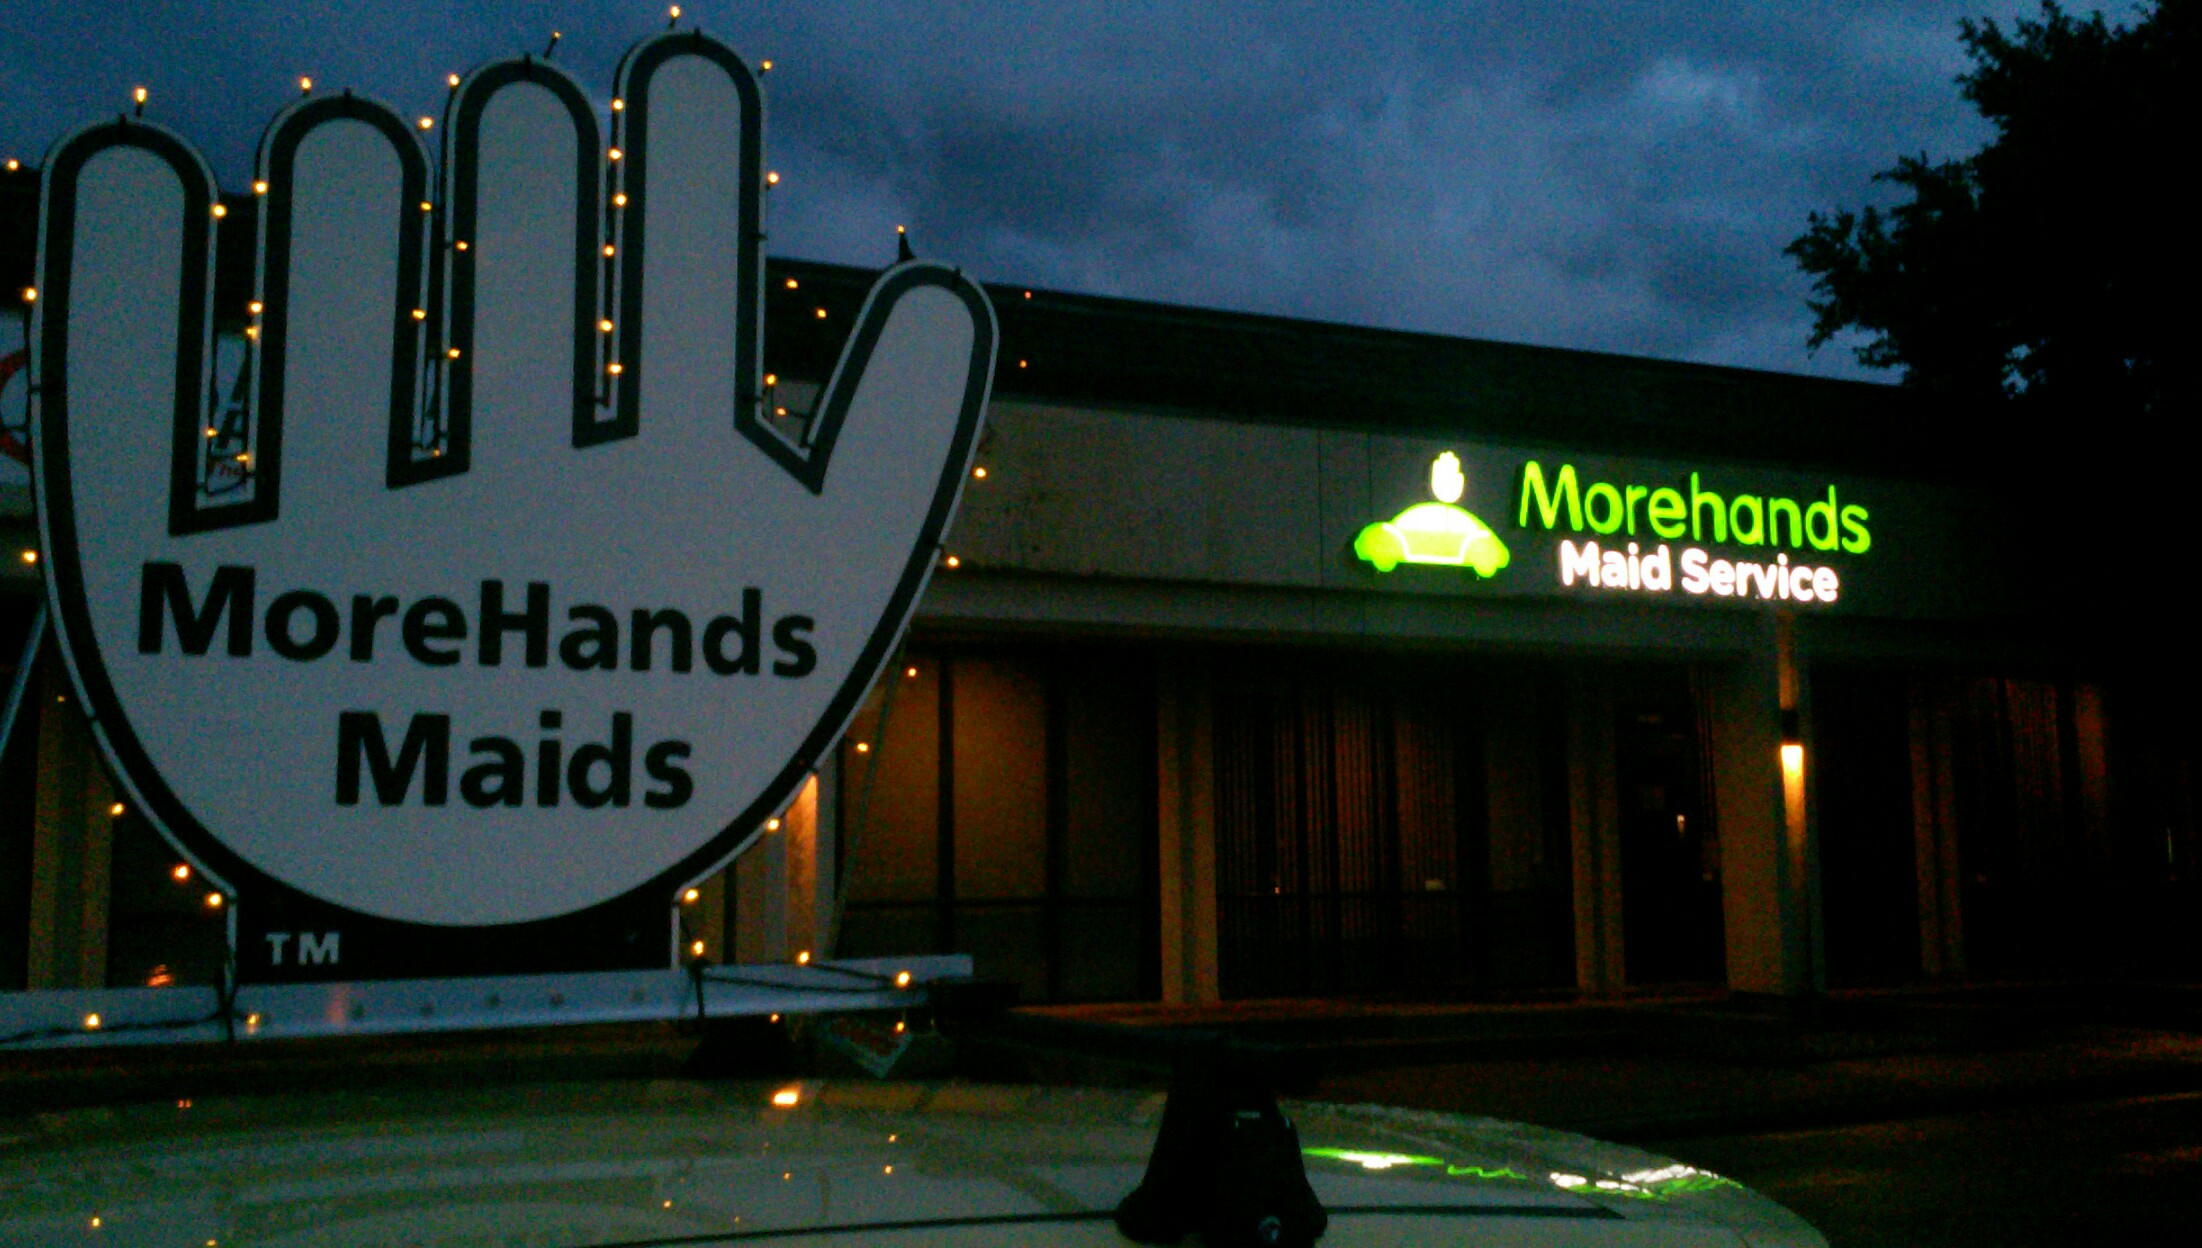 Morehands Maid Service